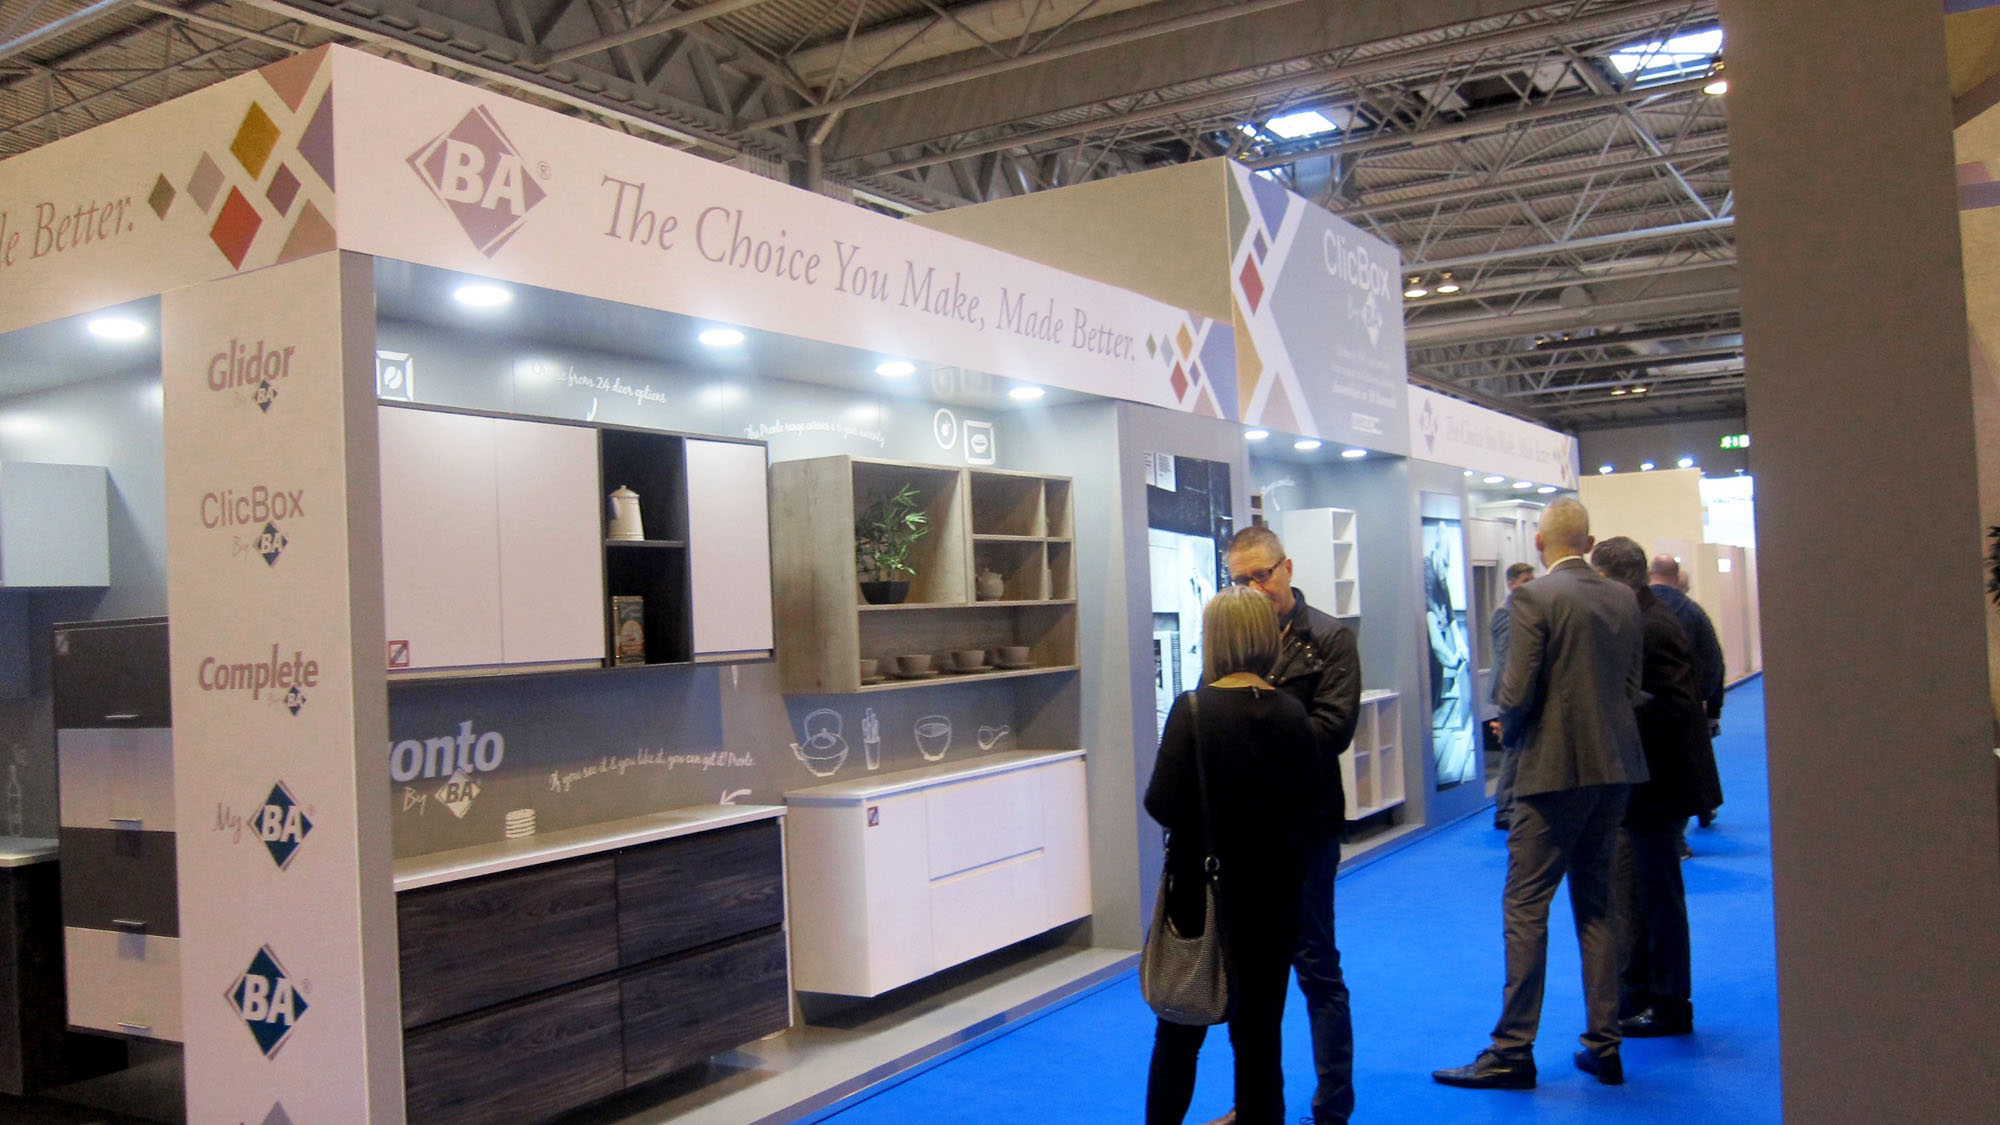 We had a BArilliant time at the KBB Birmingham 2016!